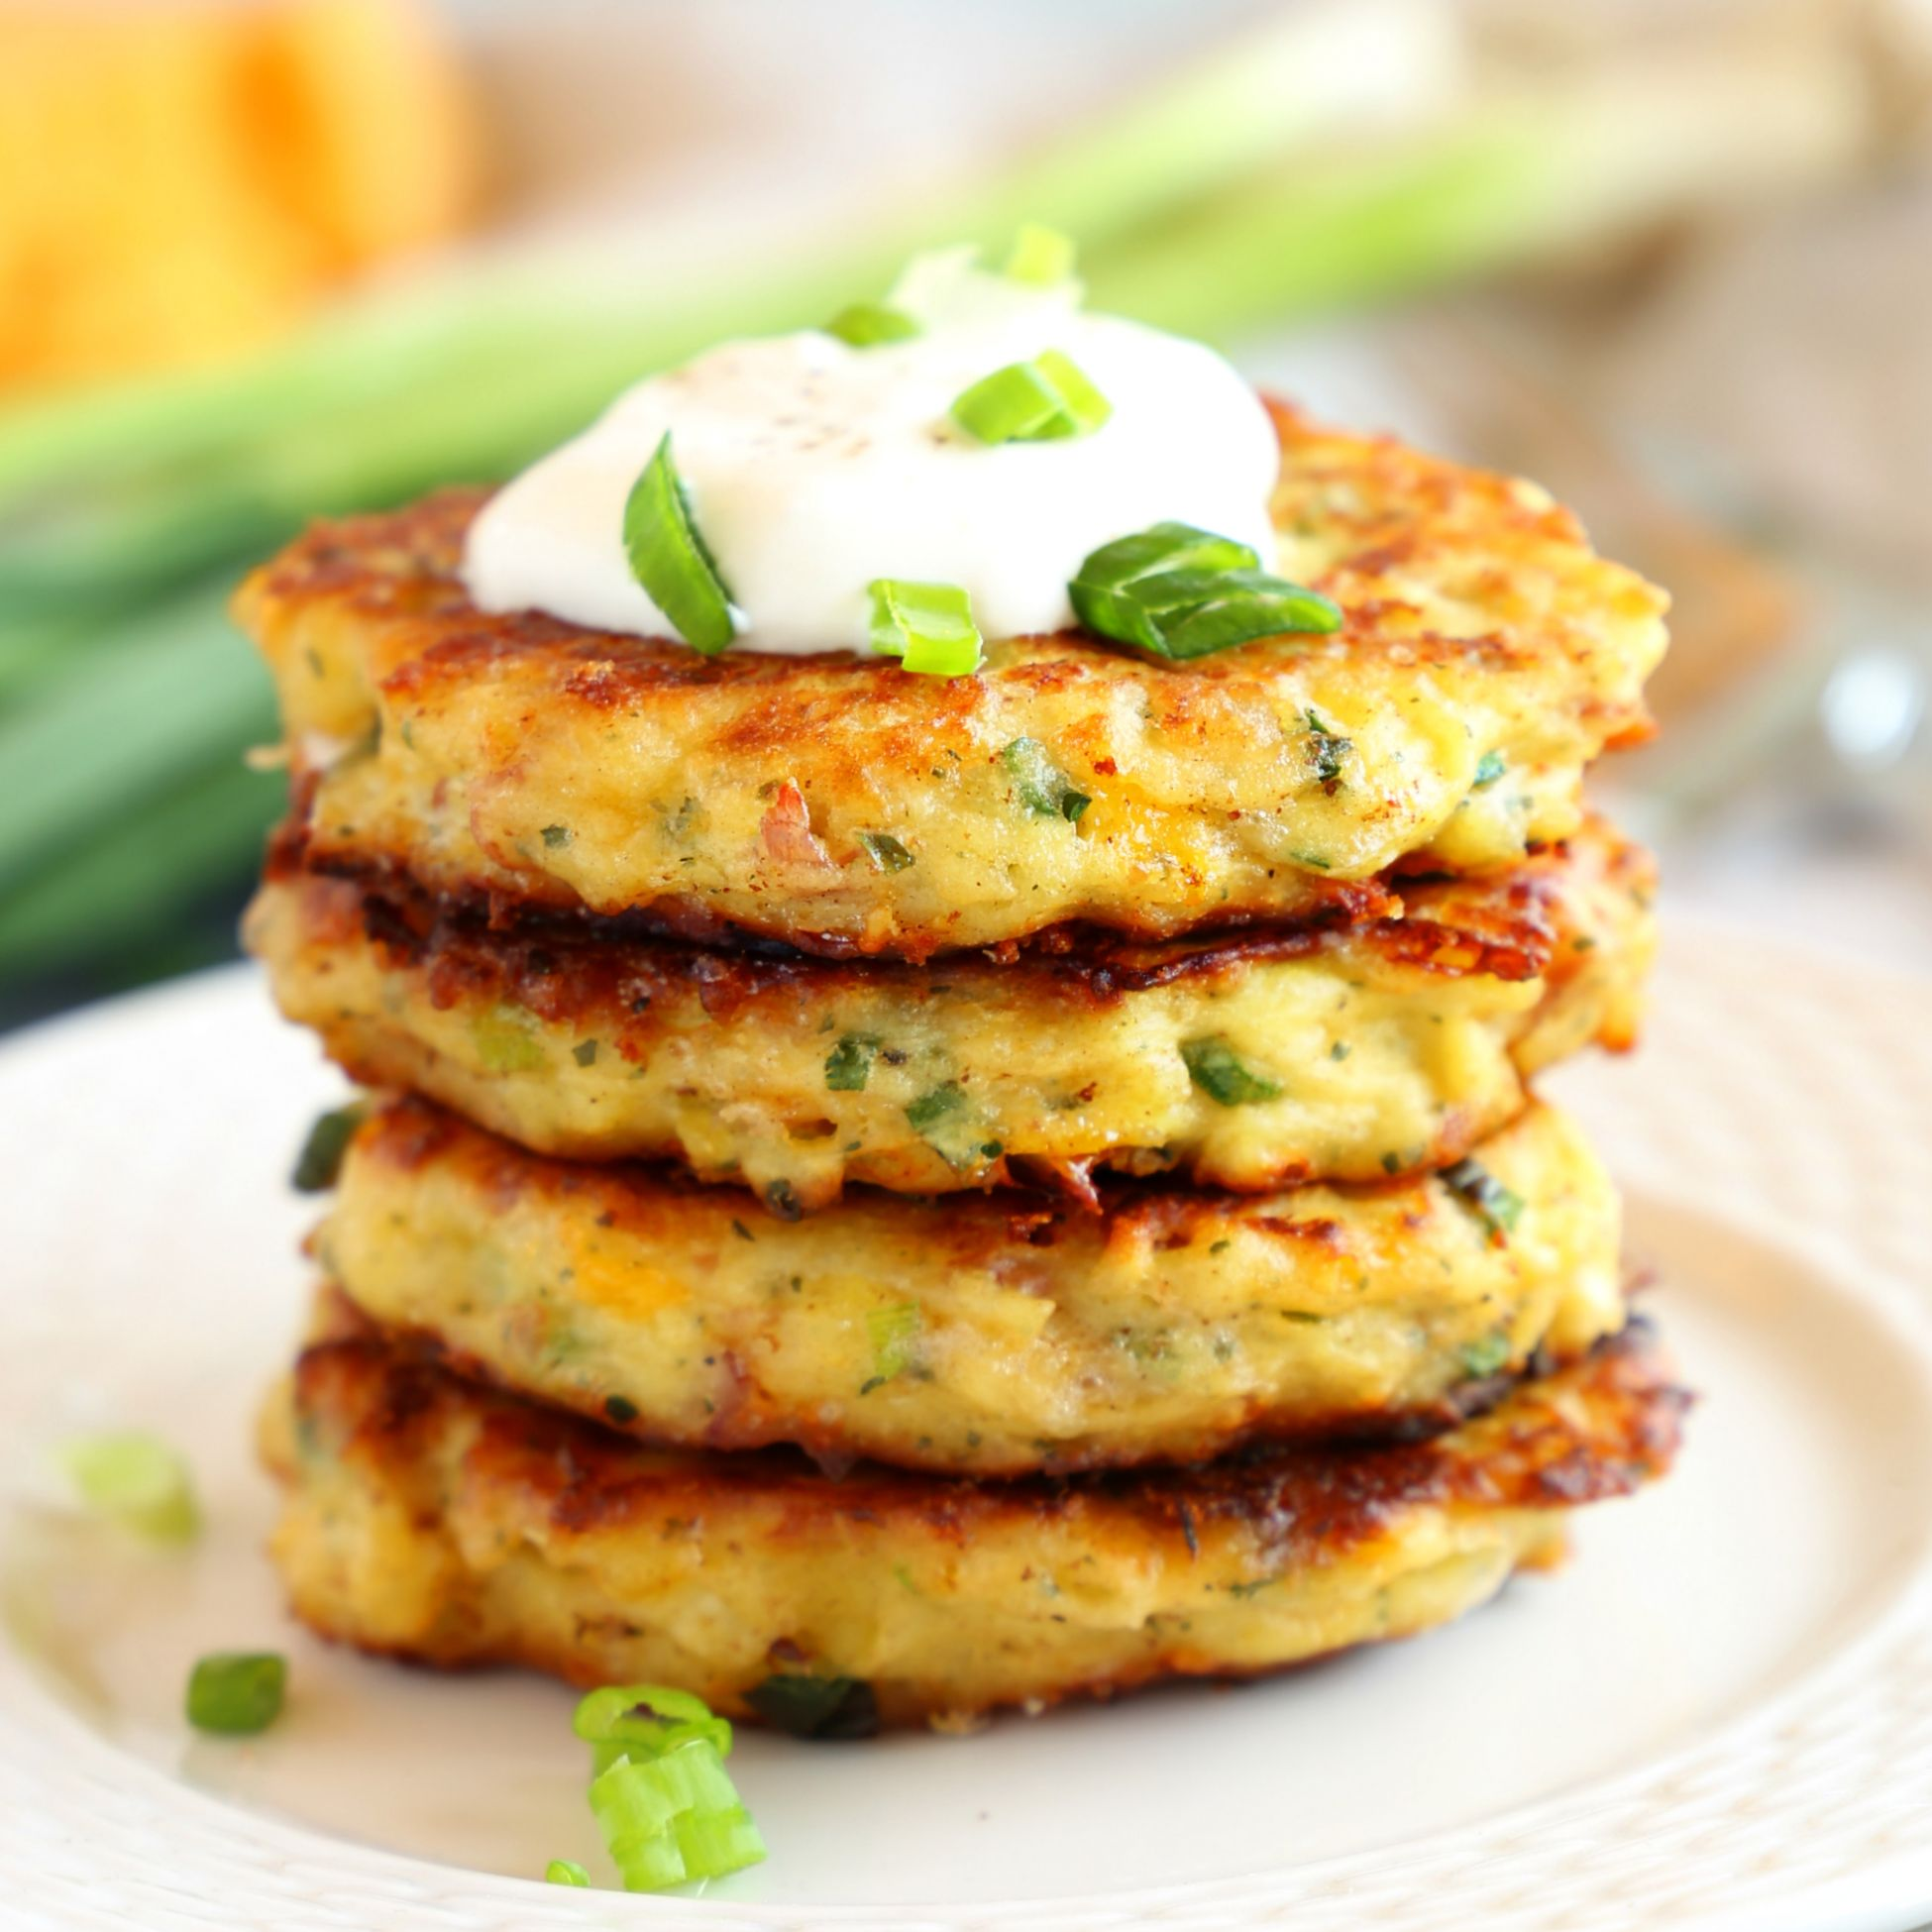 Cheesy Leftover Mashed Potato Pancakes - Recipes Potato Pancakes